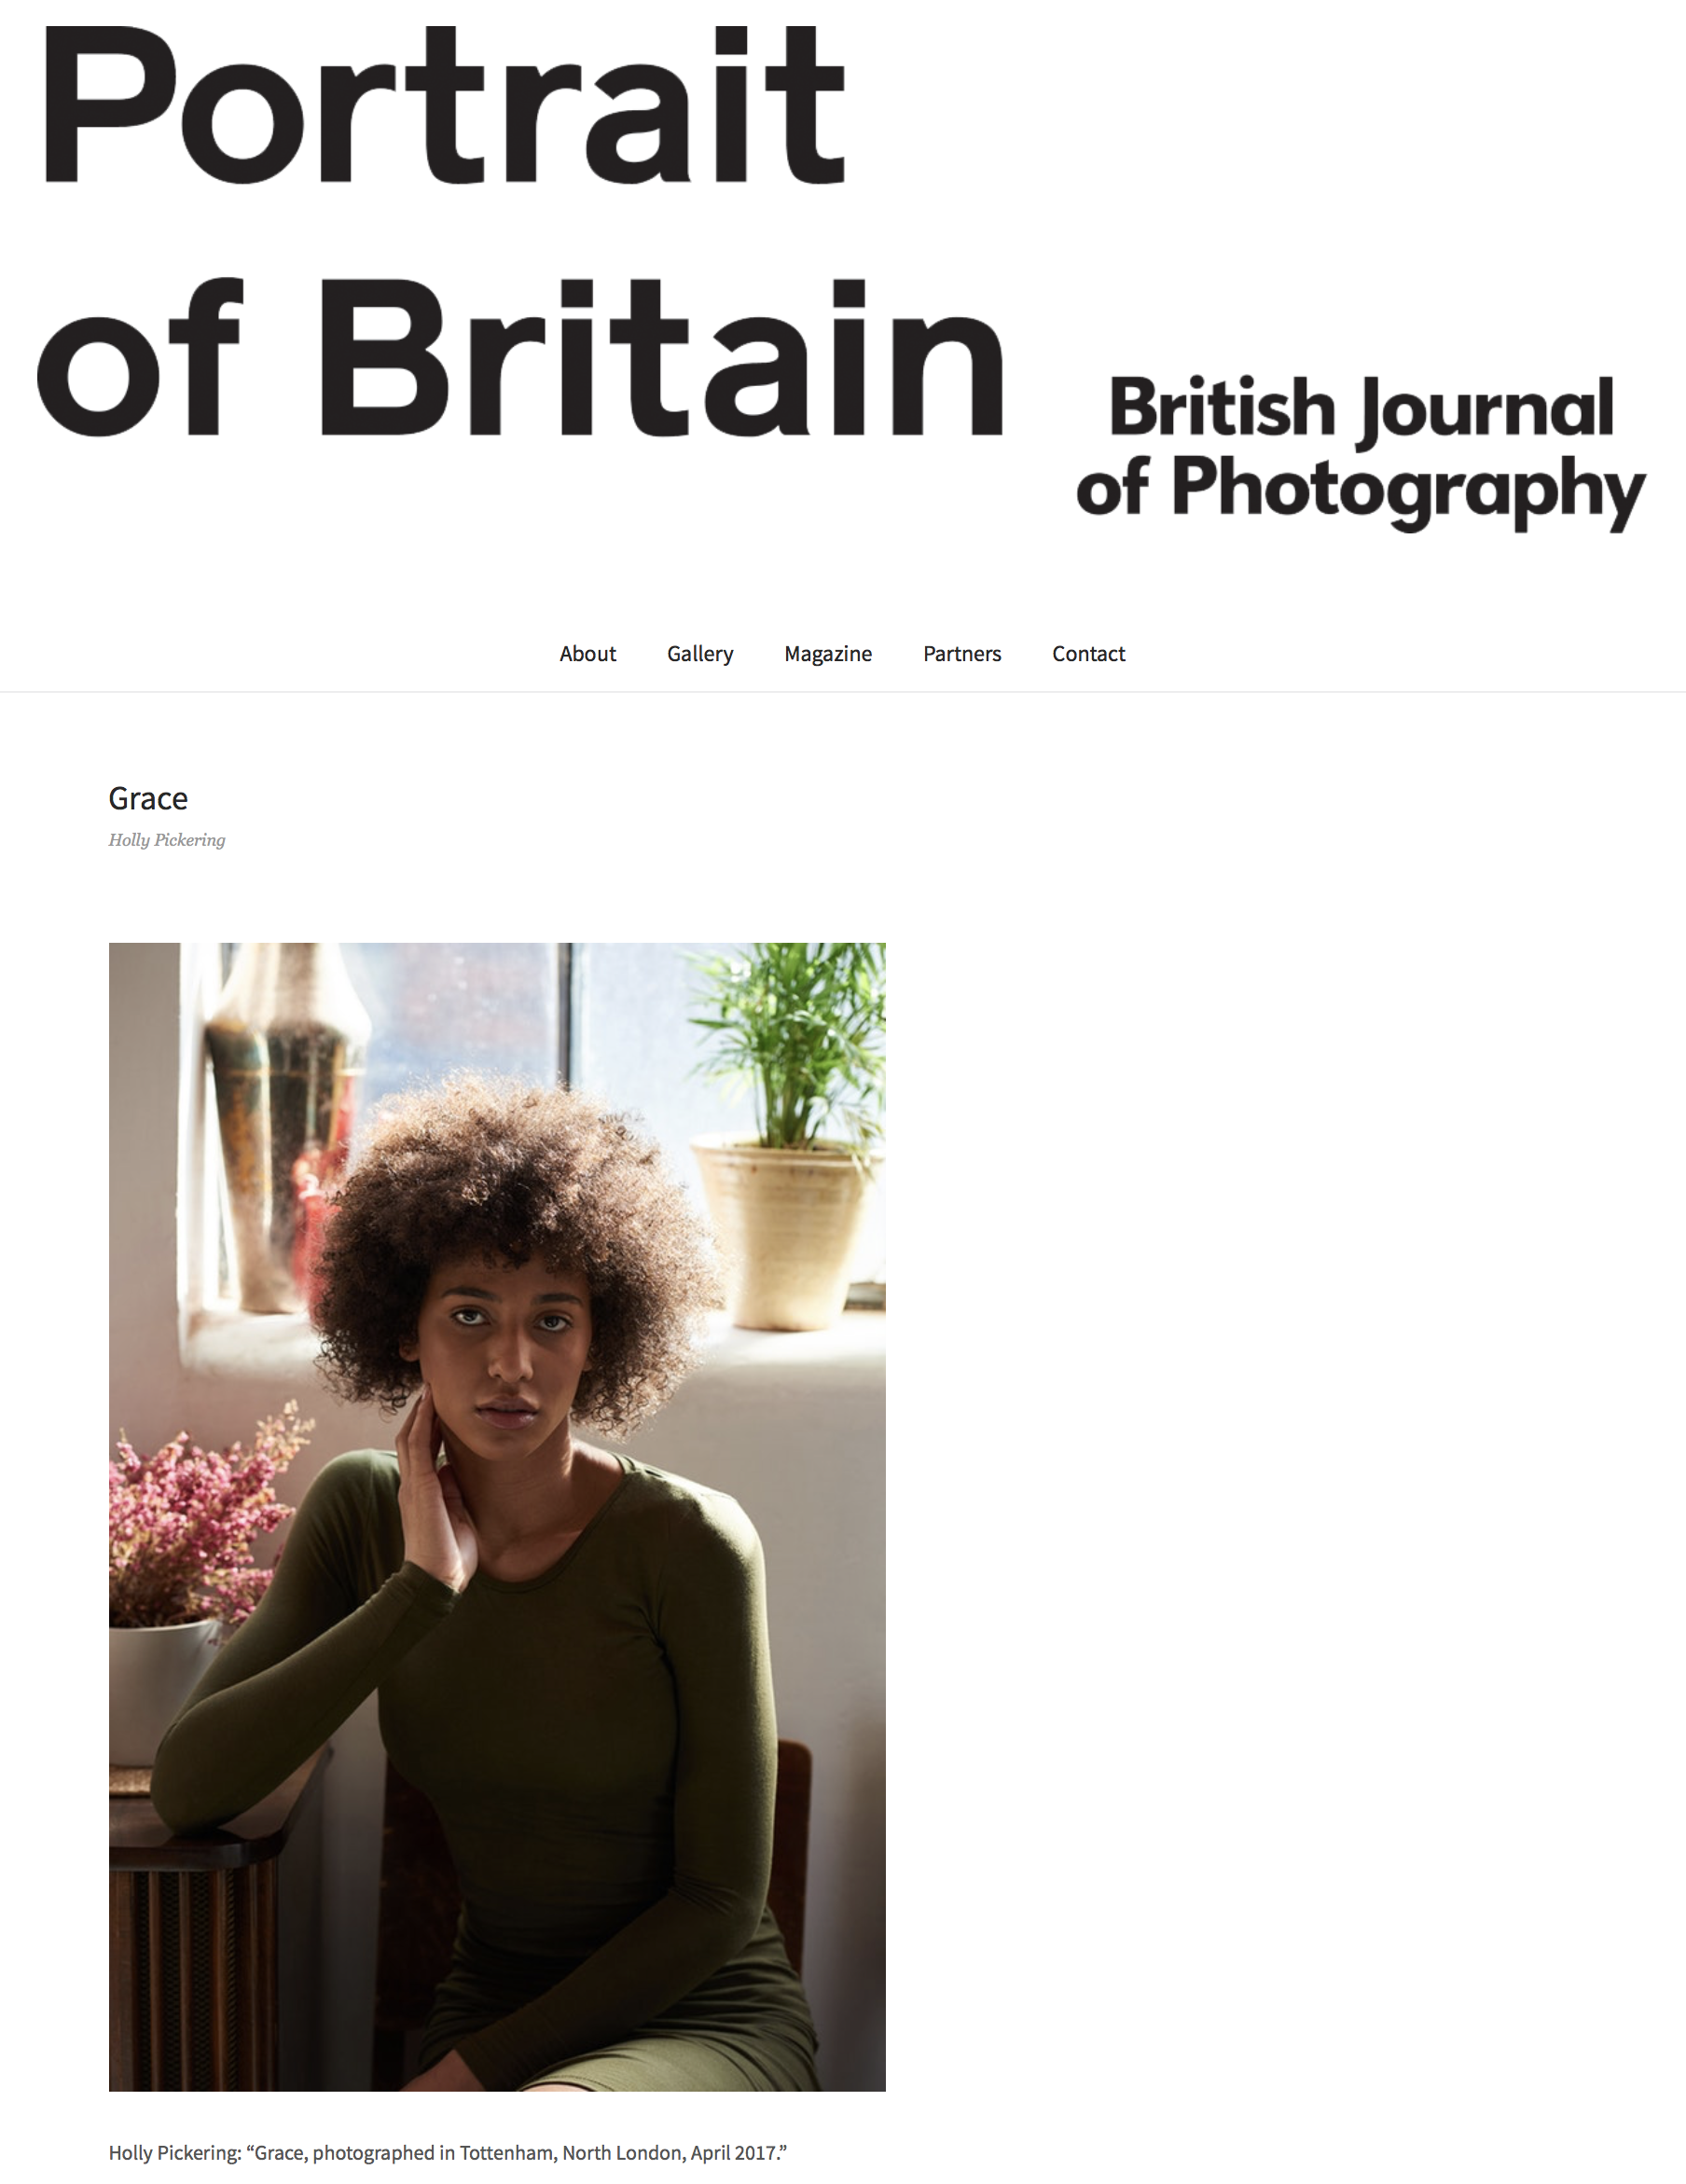 Holly Pickering Portrait of Britain 2017 image